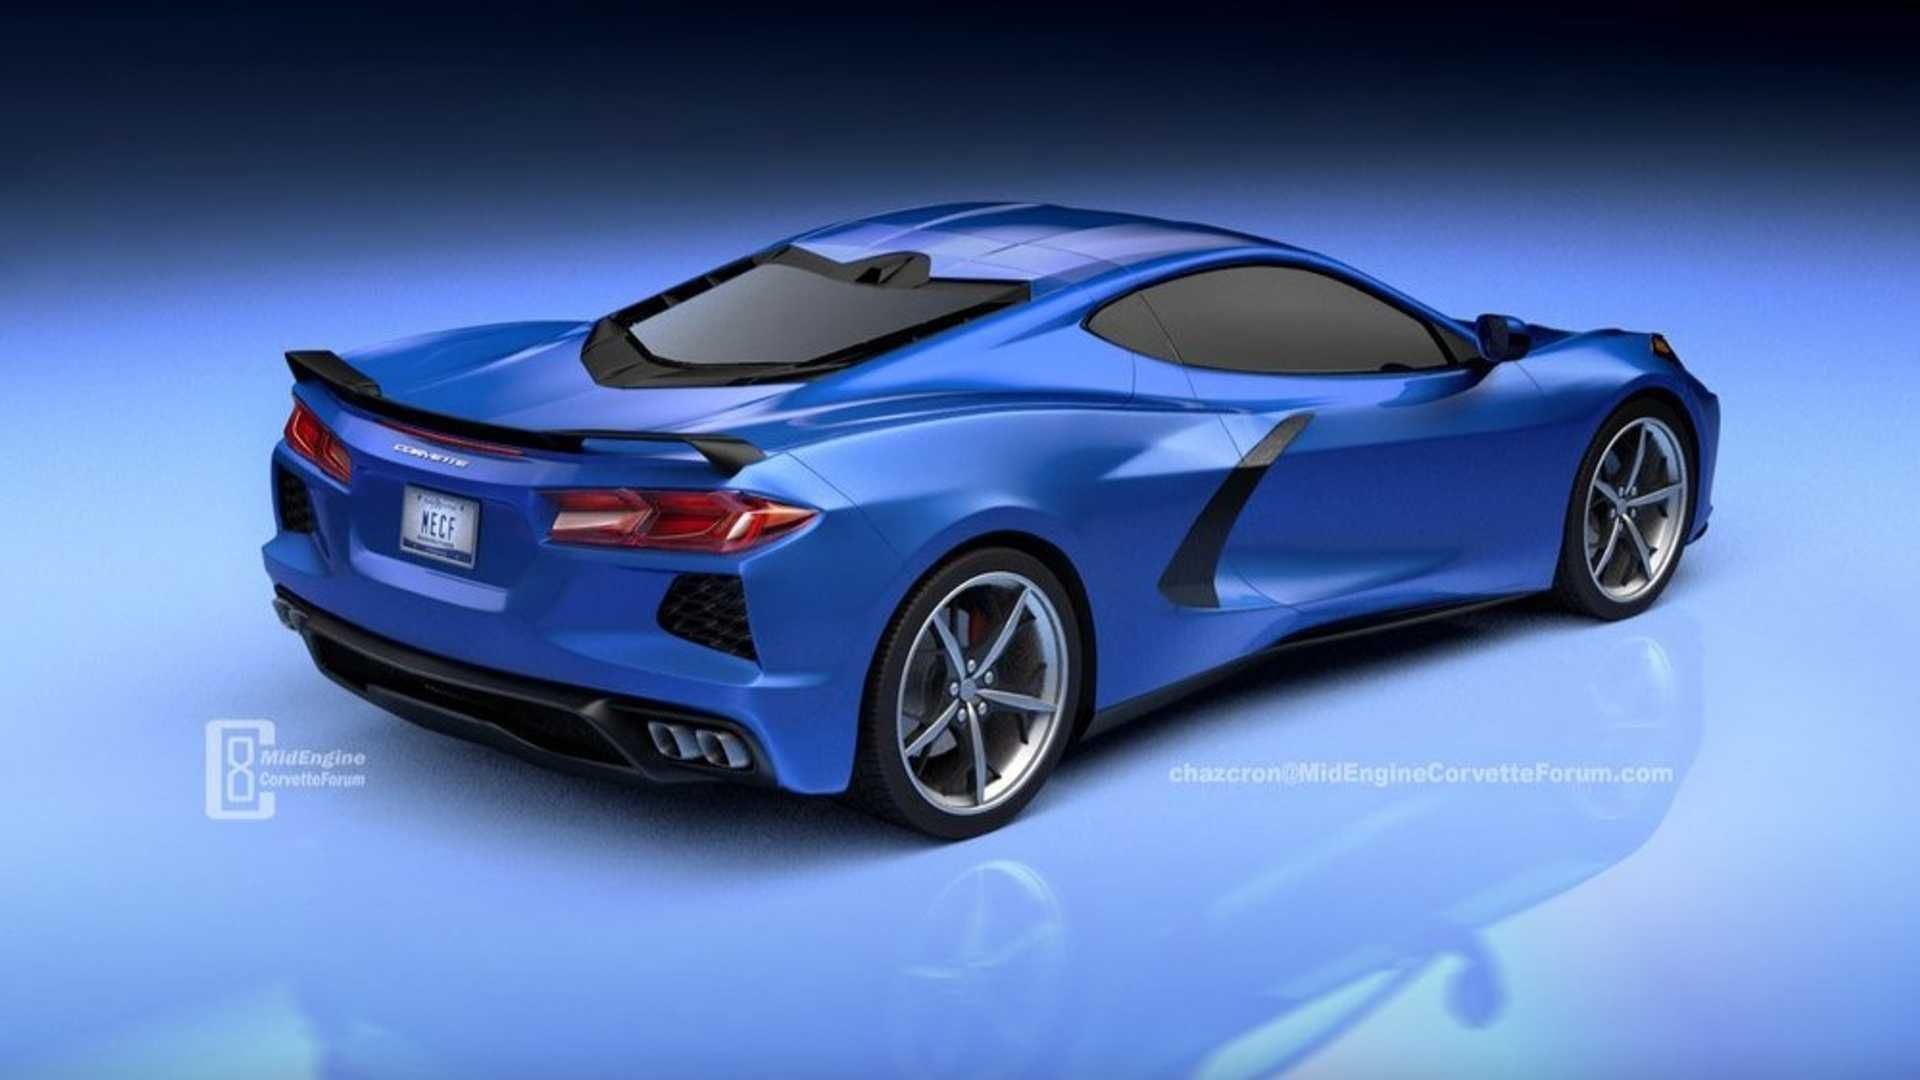 2020 Mid Engined Corvette Everything We Know Chevrolet Corvette Corvette Chevy Corvette